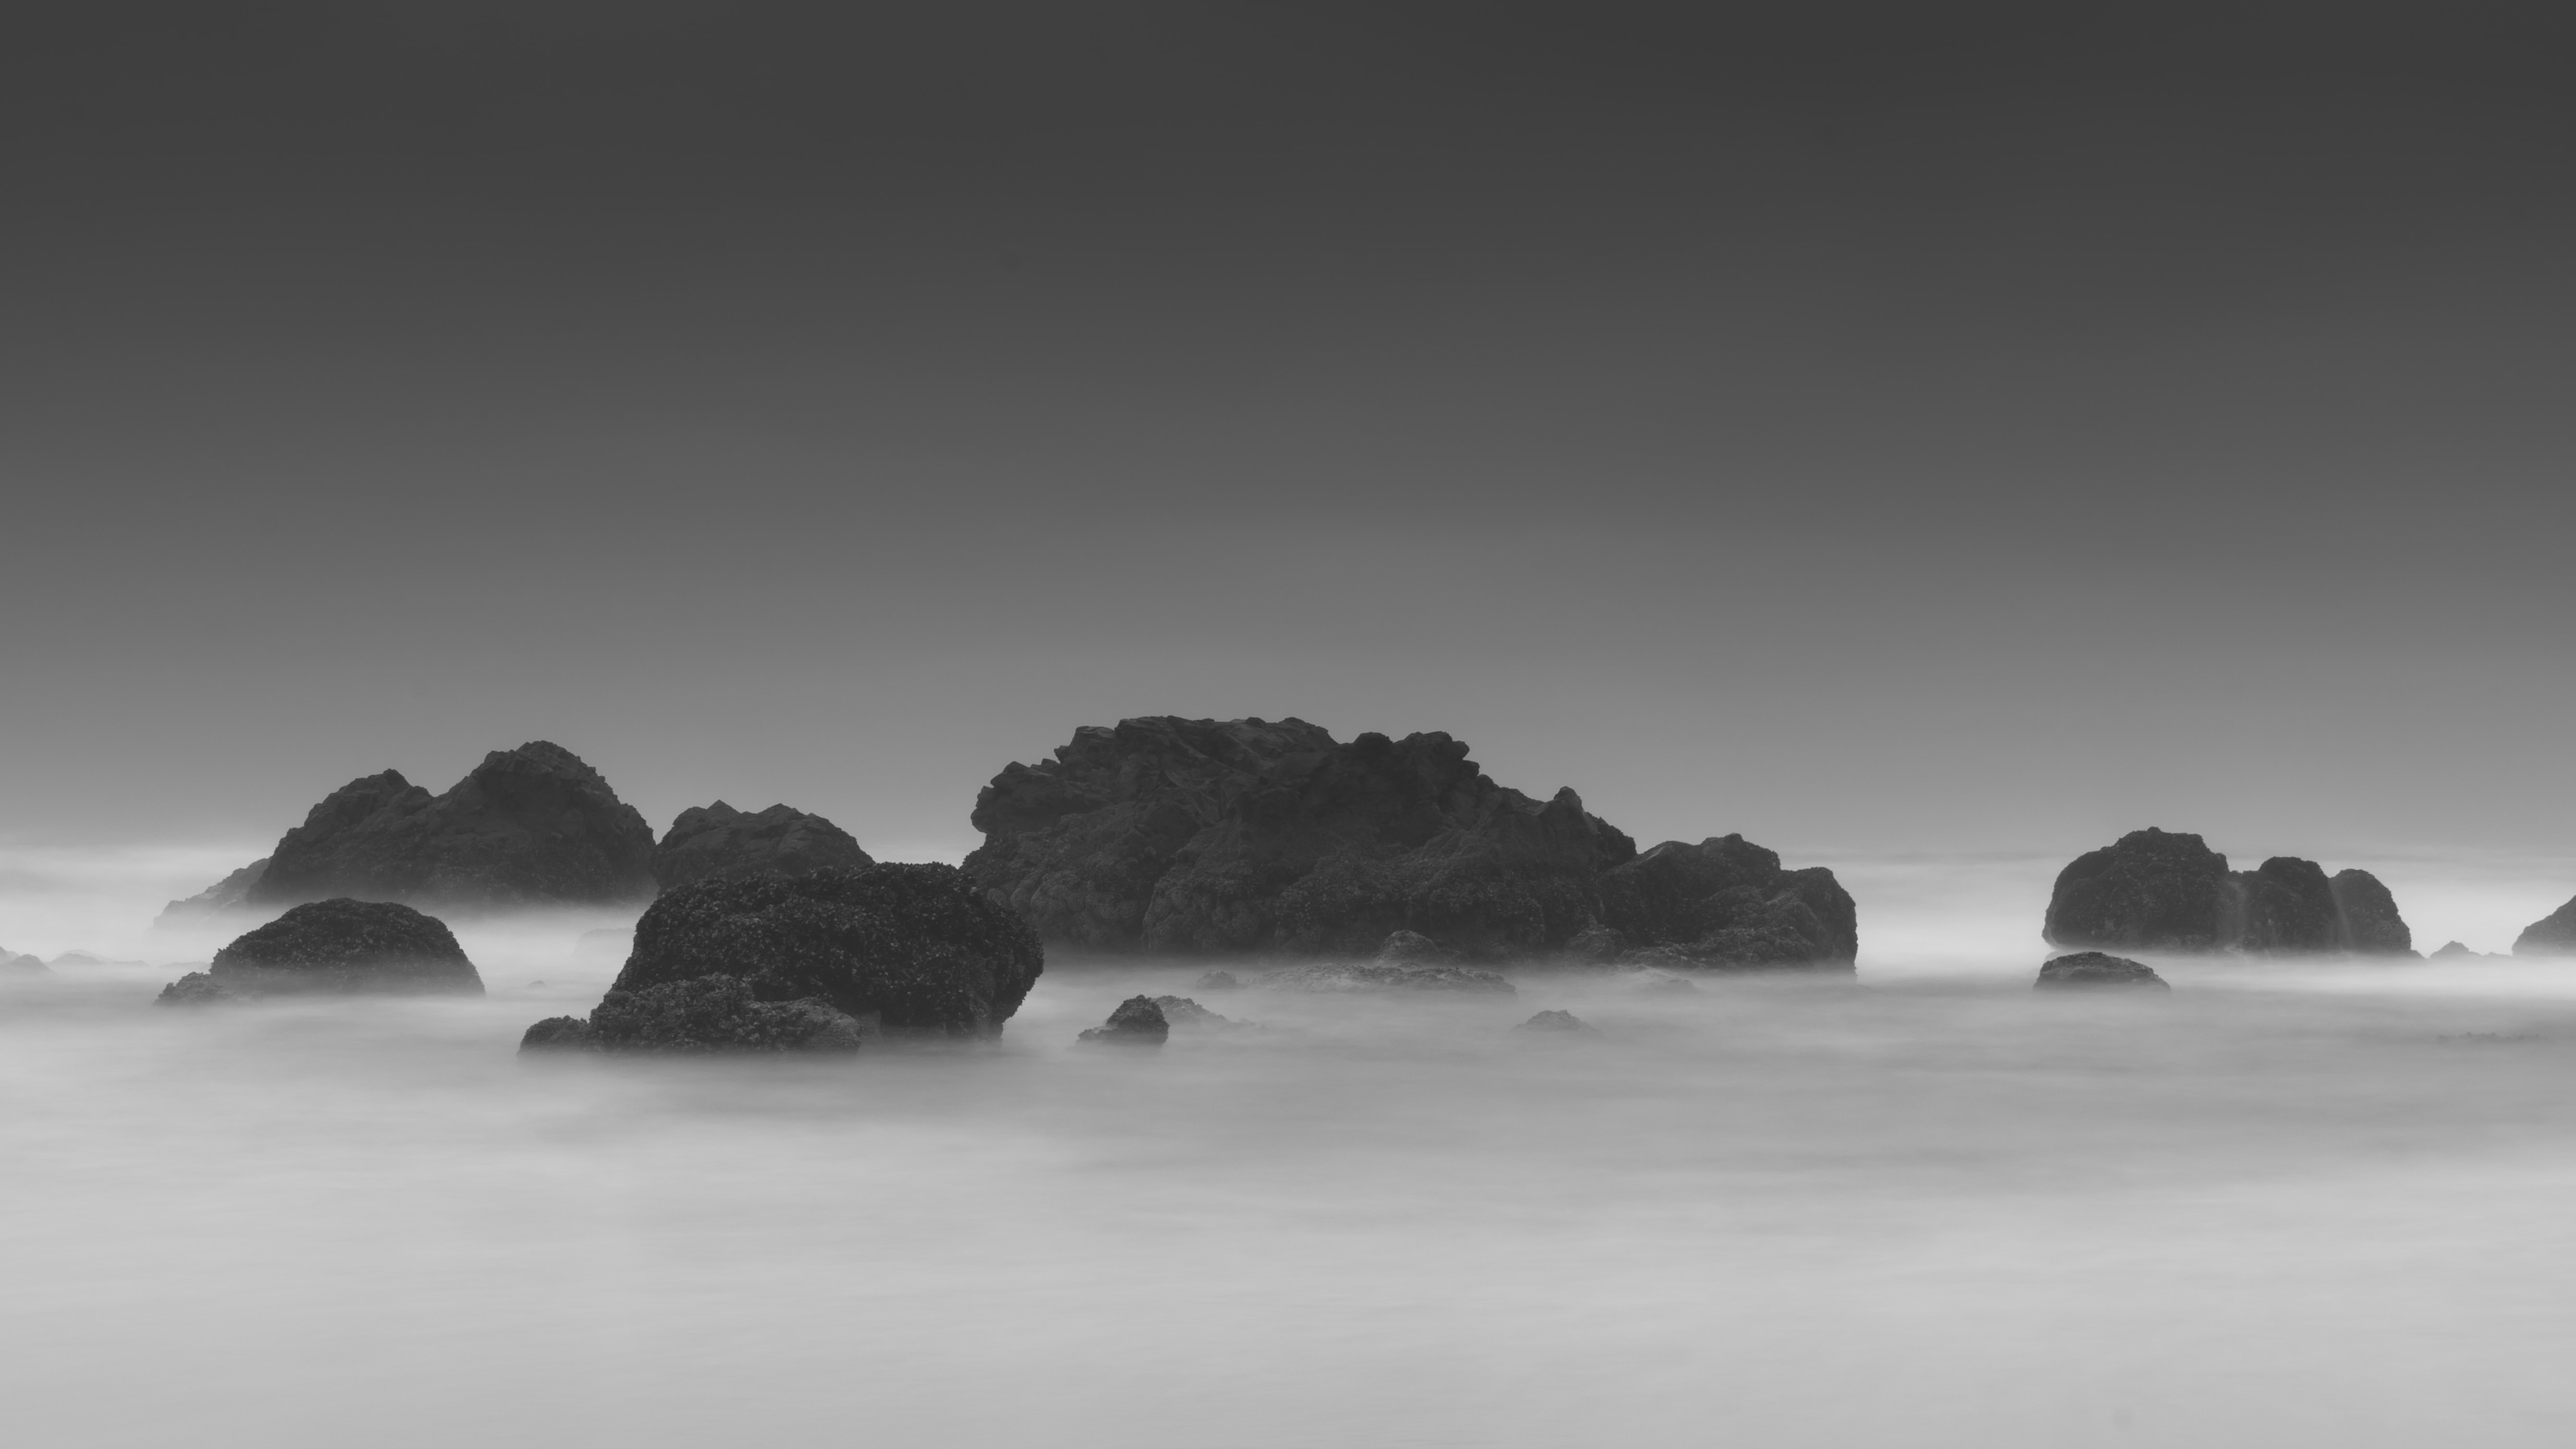 A black-and-white shot of large rocks jutting out from the frothy sea